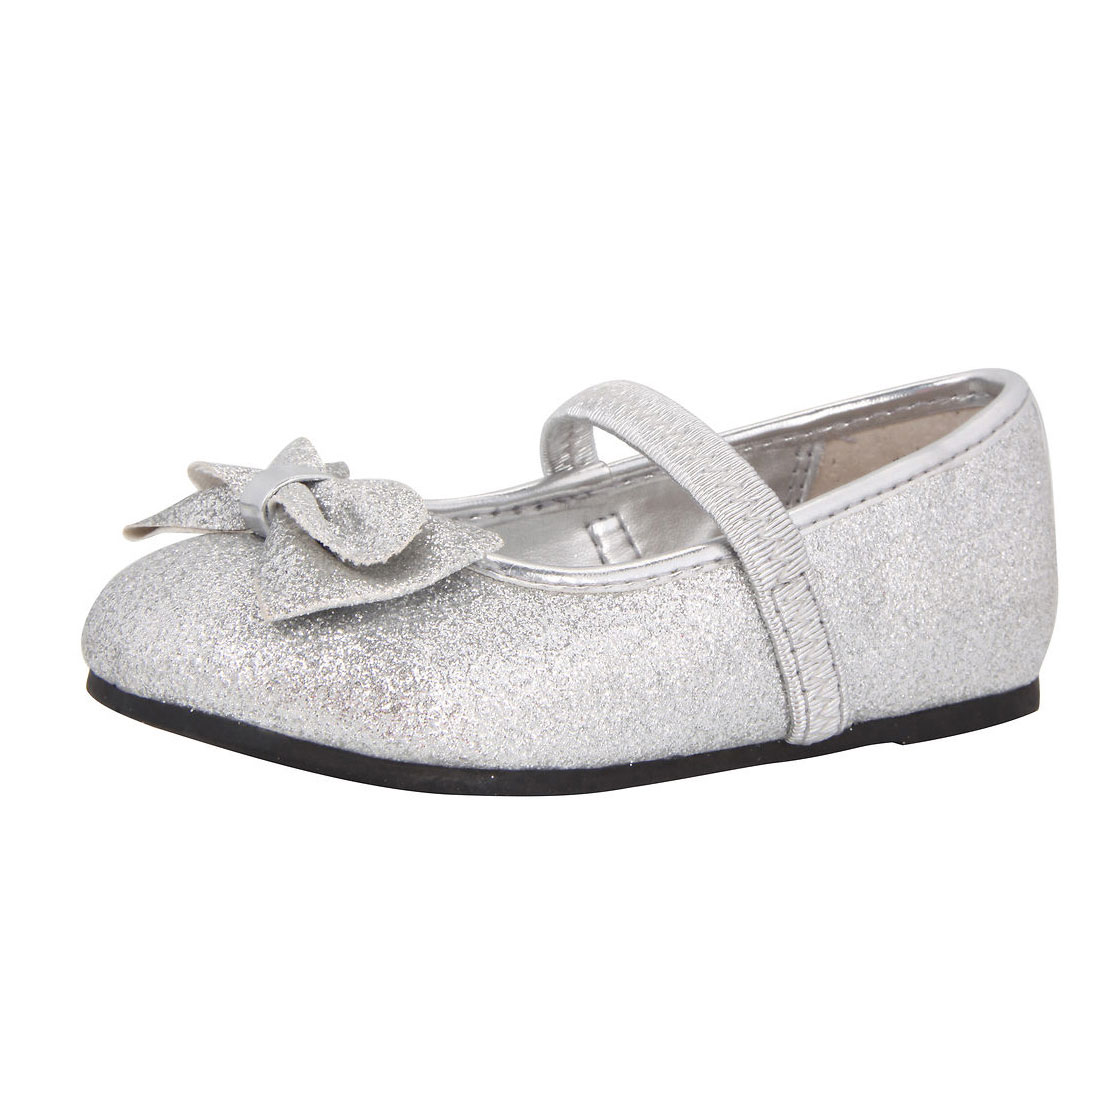 silver glitter upper with bow girl dress shoes flat shoes YH0005